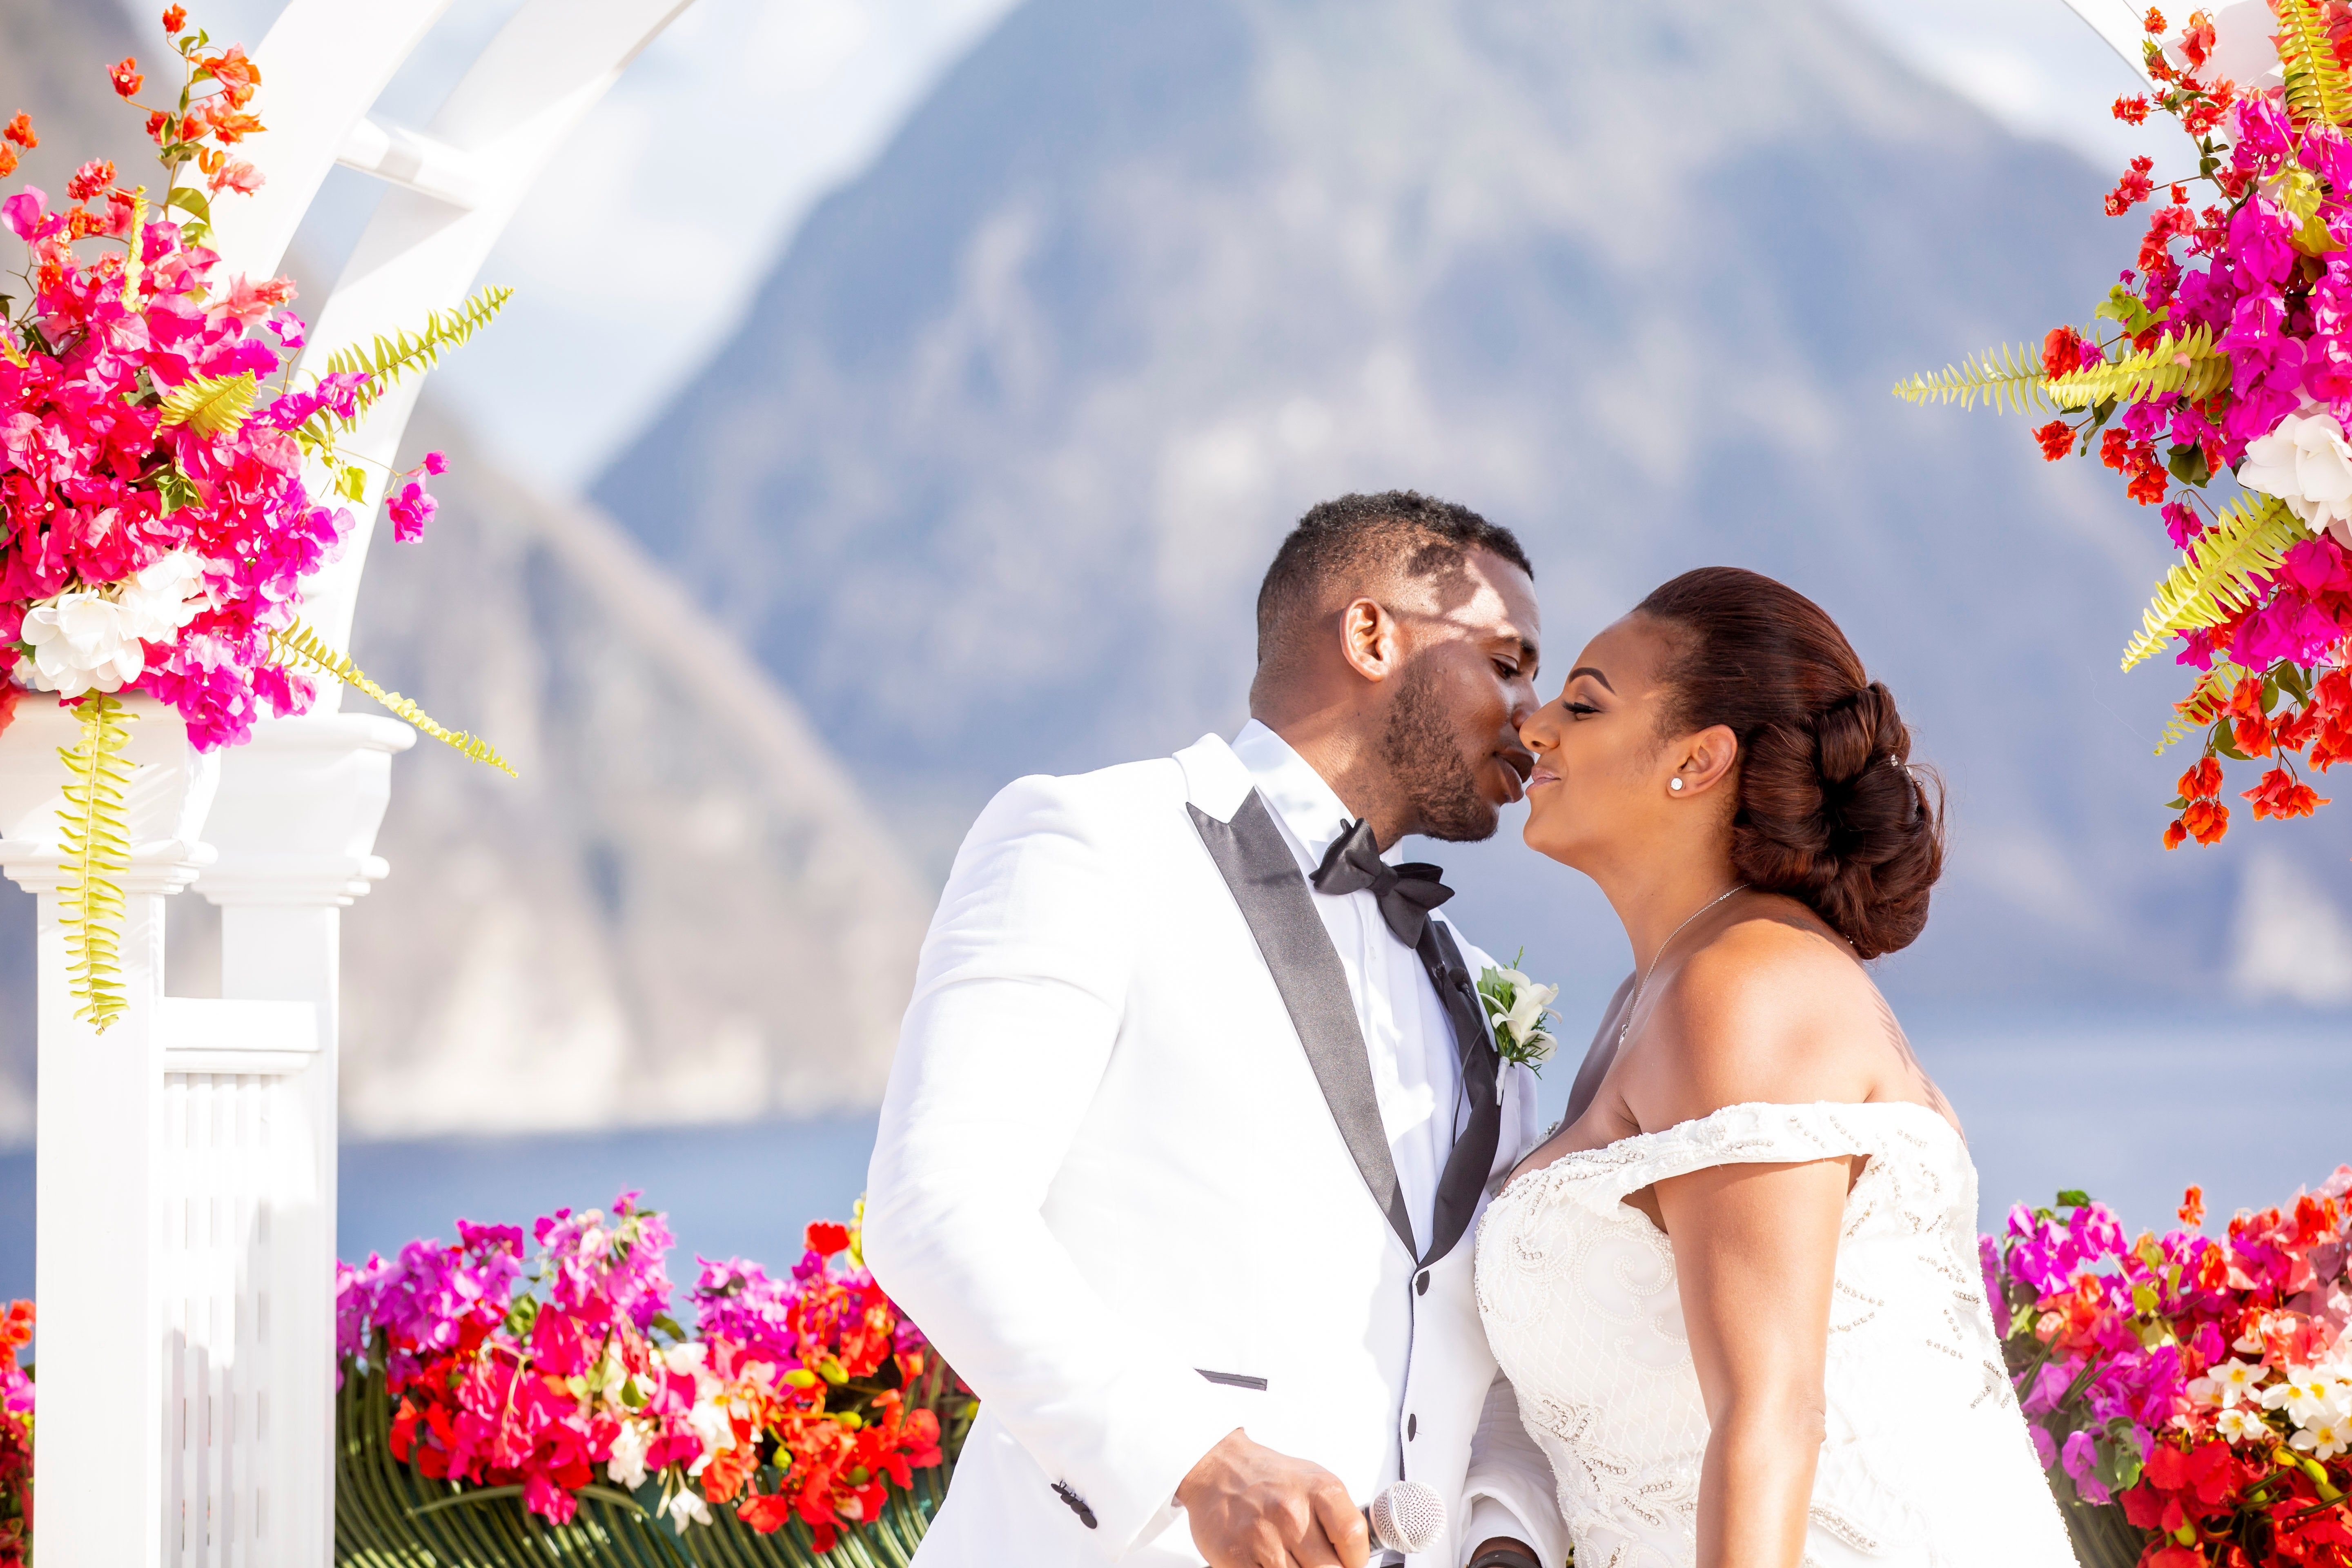 Bridal Bliss: Melissa and Hervan's St. Lucia's Wedding At Jade Mountain Resort